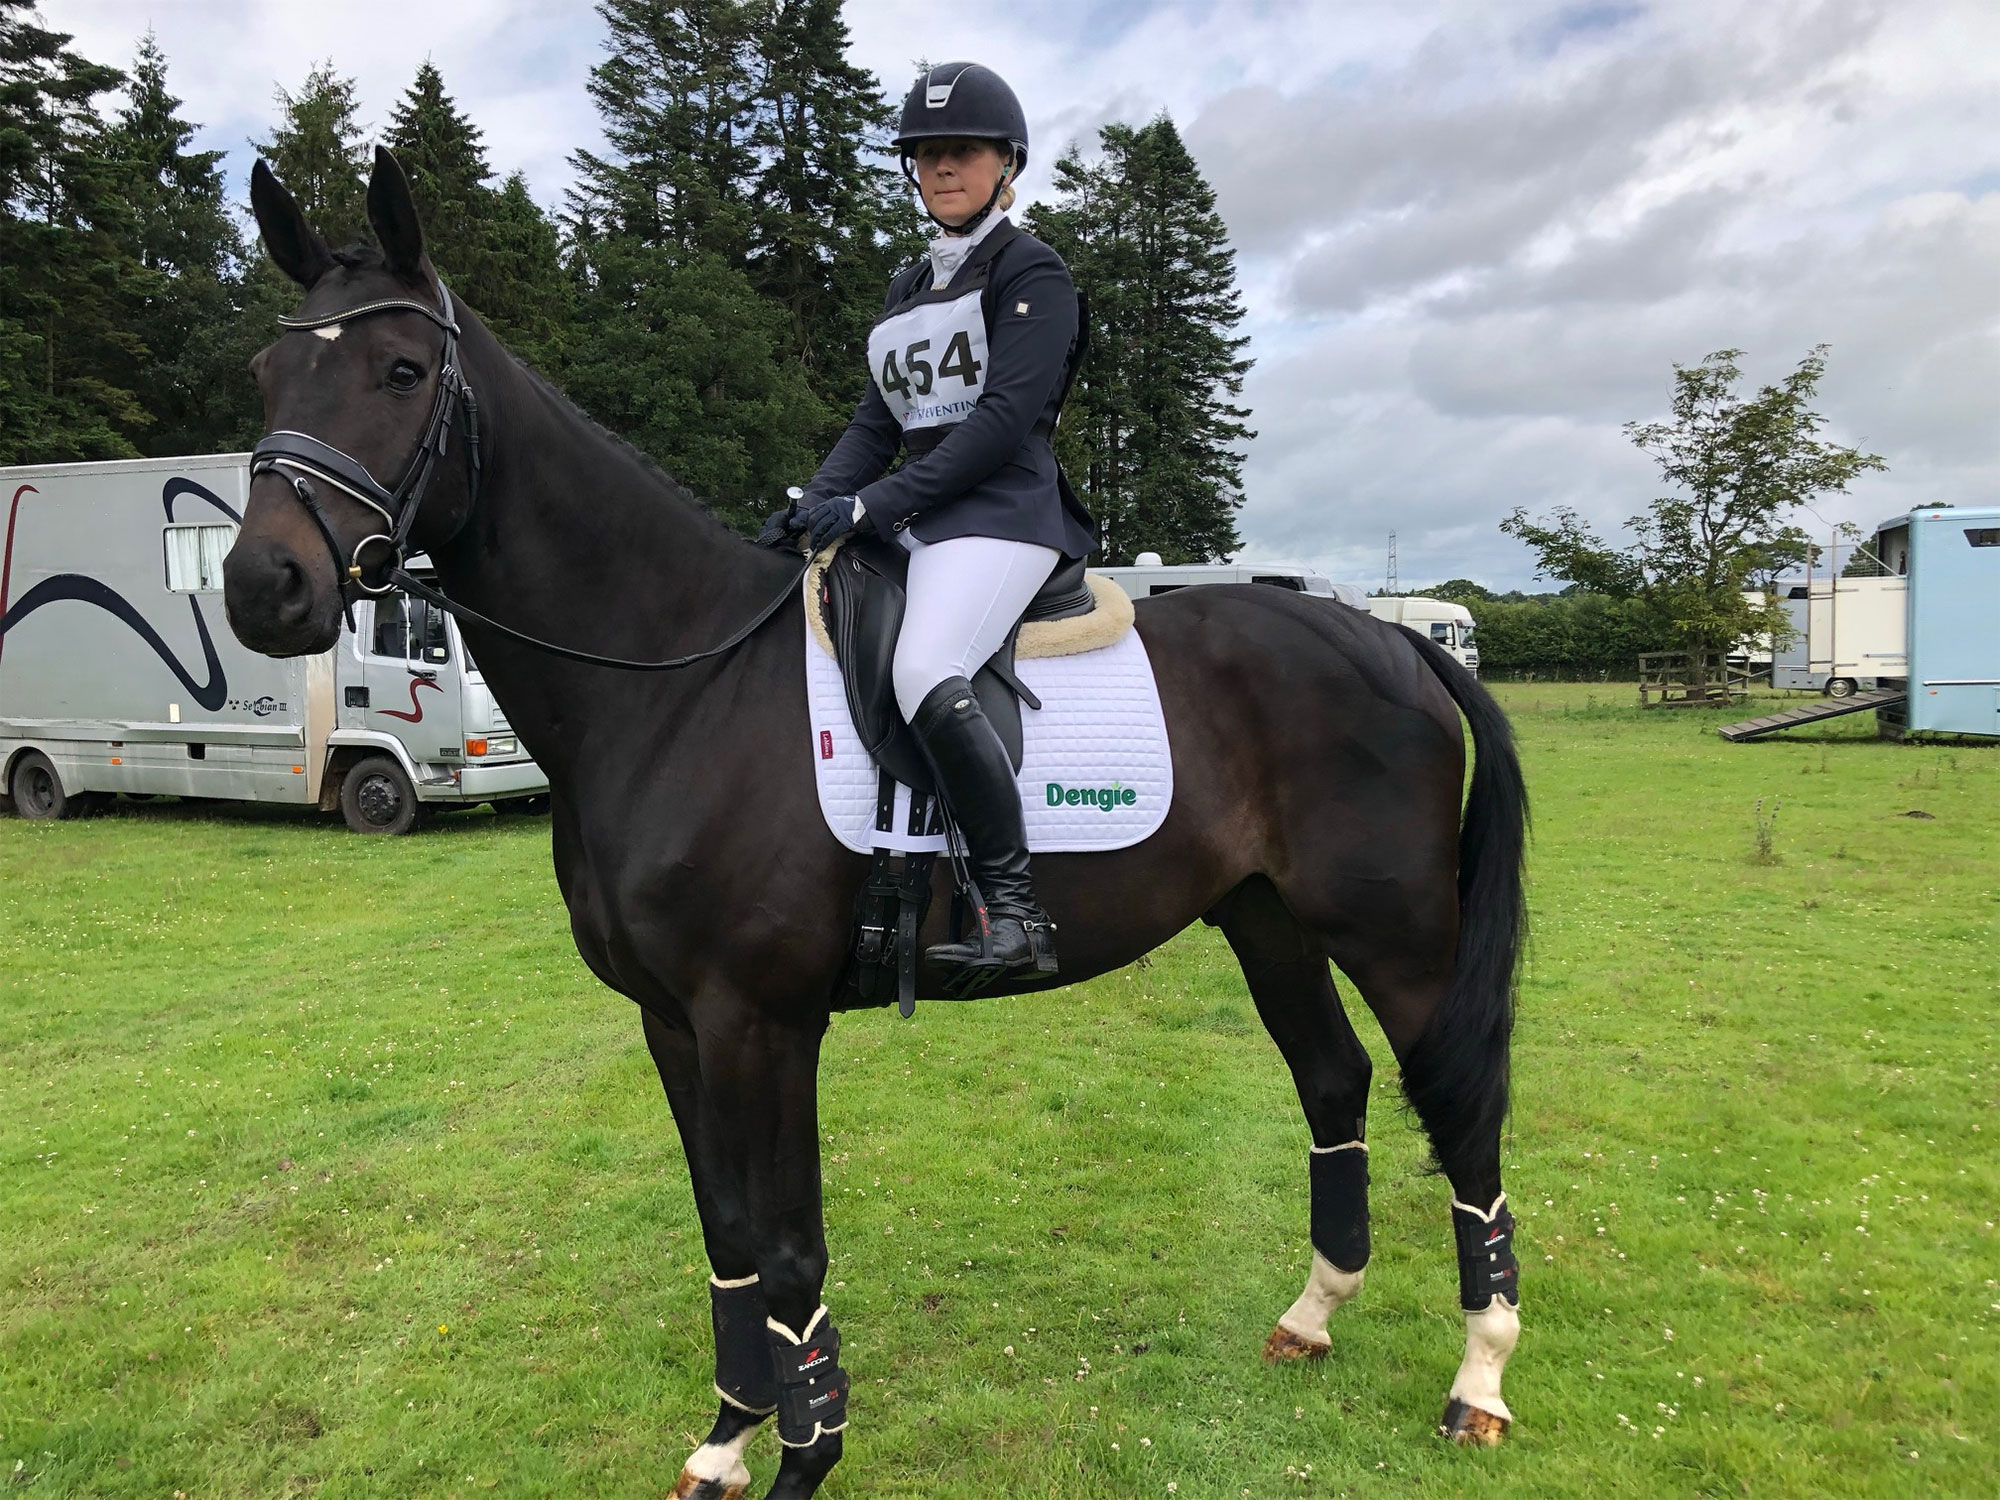 Horse and Rider prepared for Competition